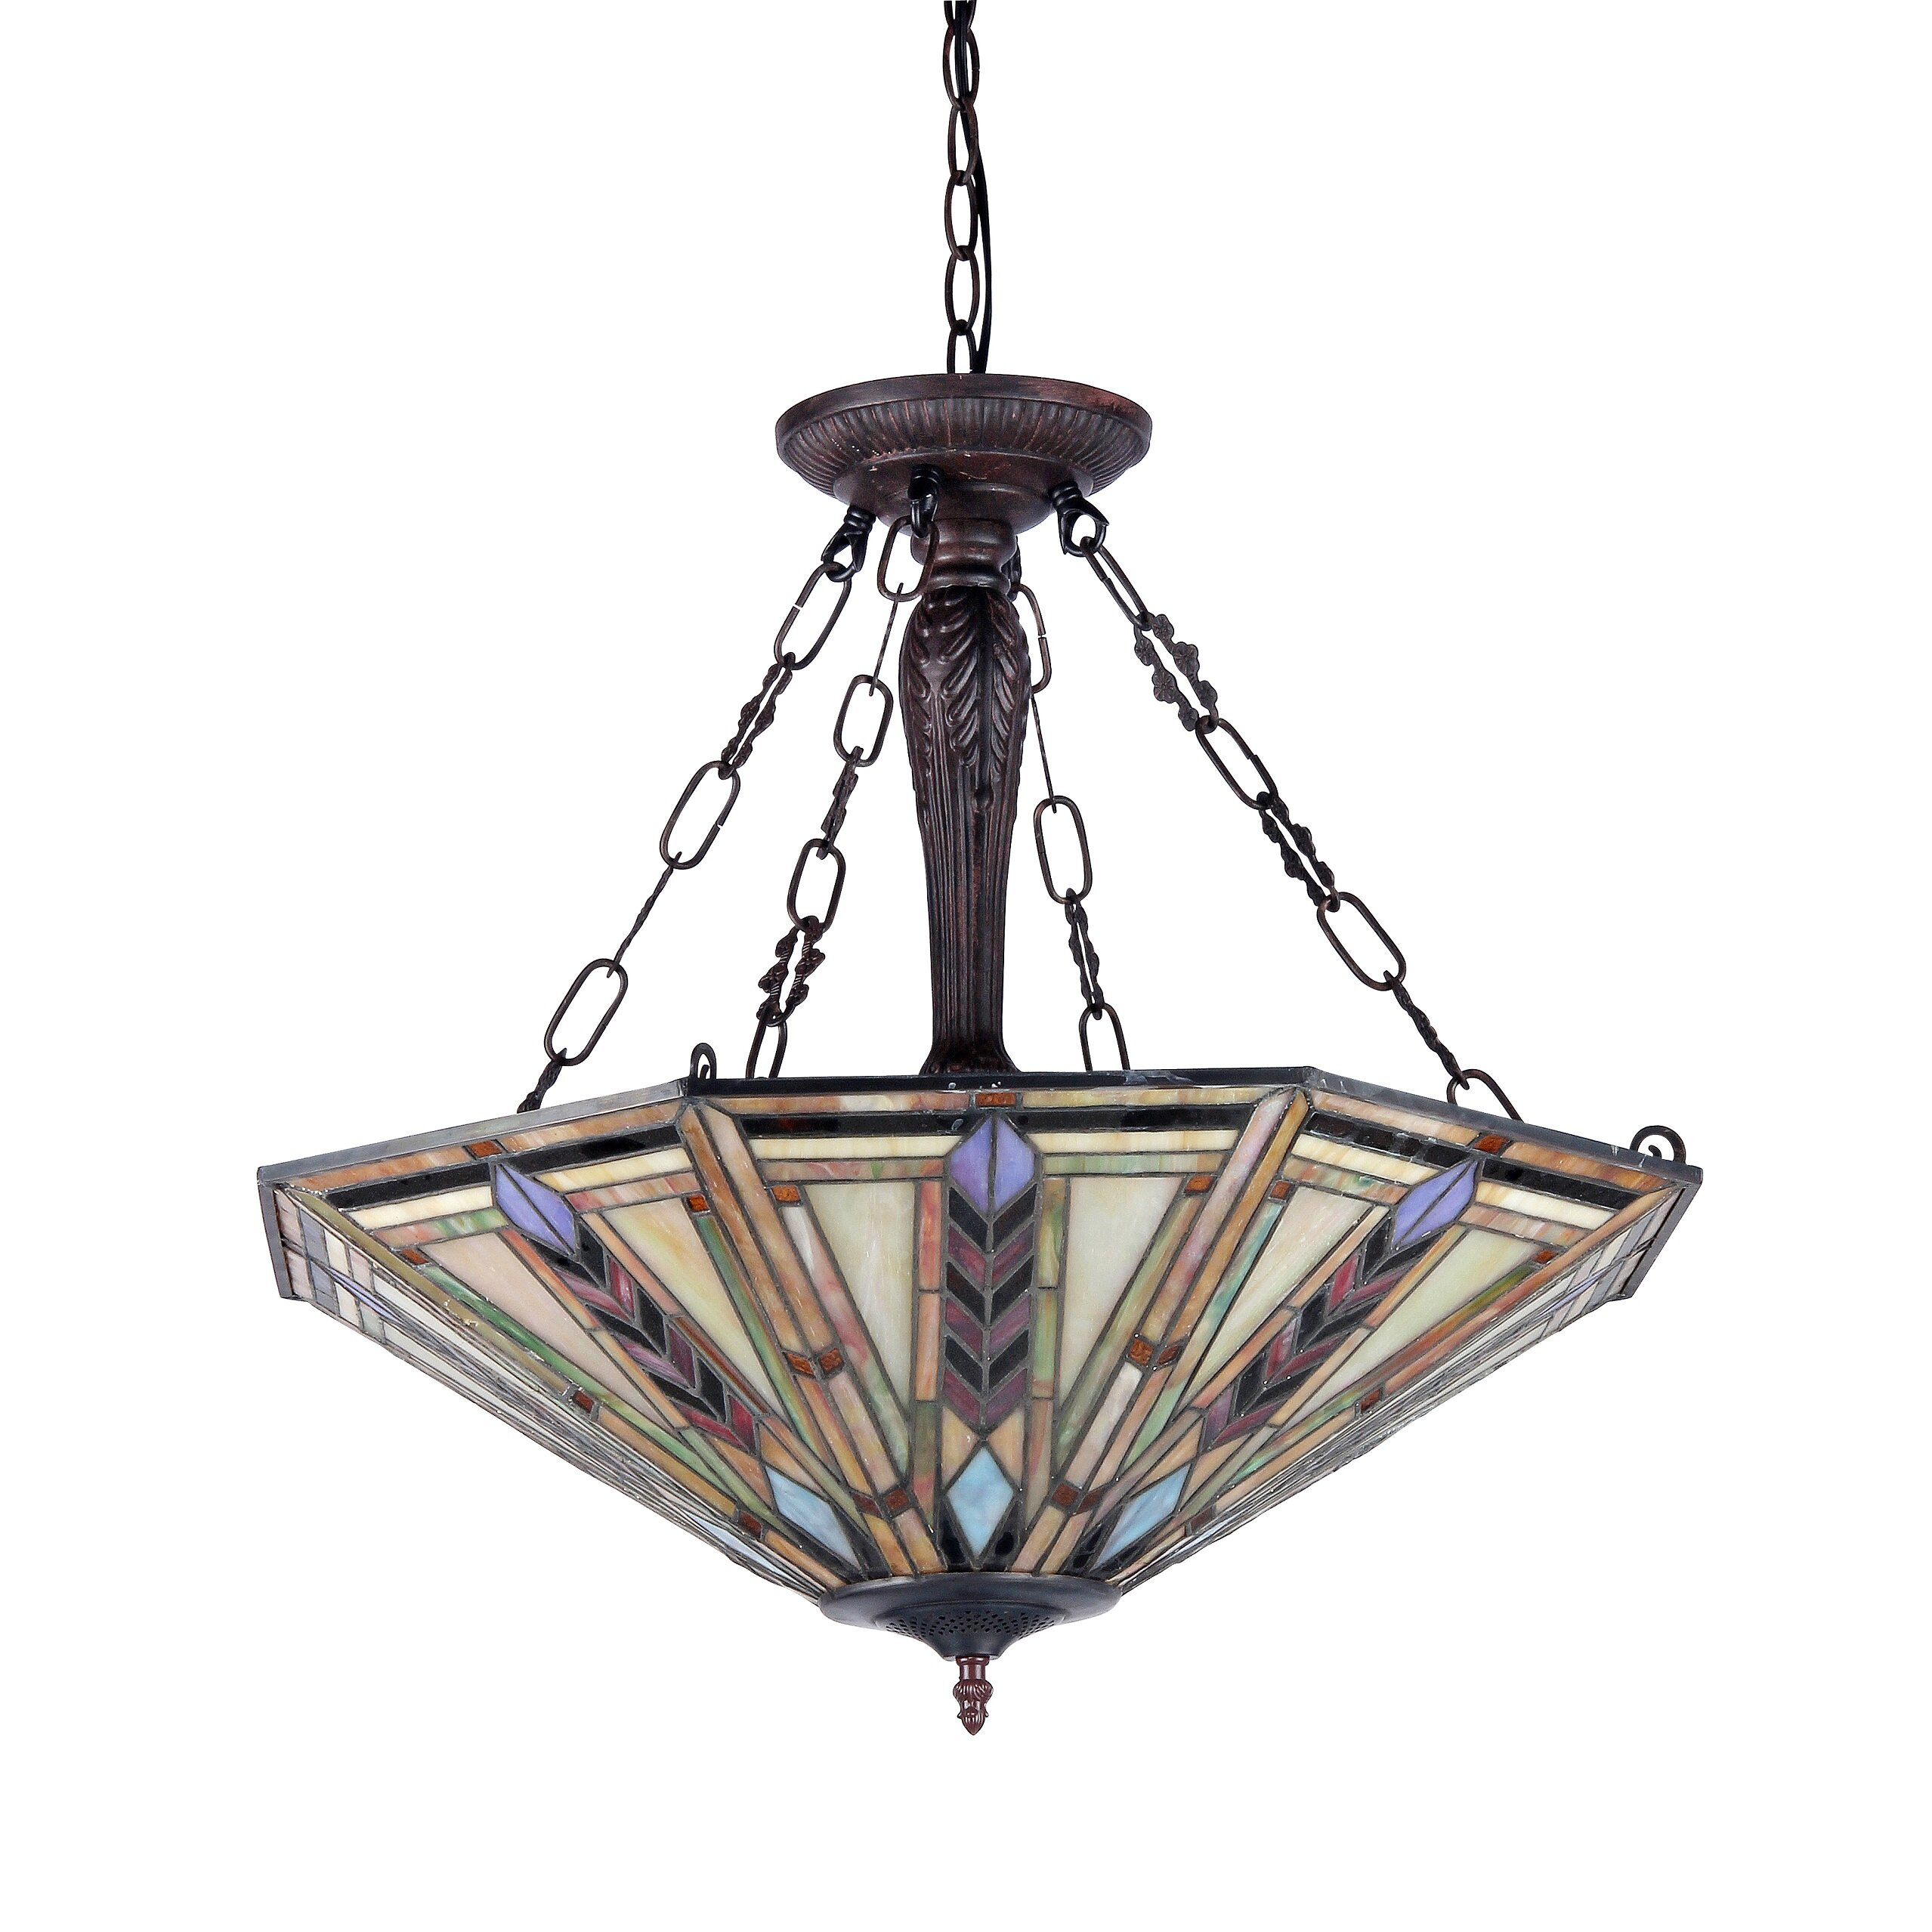 Chloe Lighting Jayden 3 Light Inverted Pendant & Reviews | Wayfair